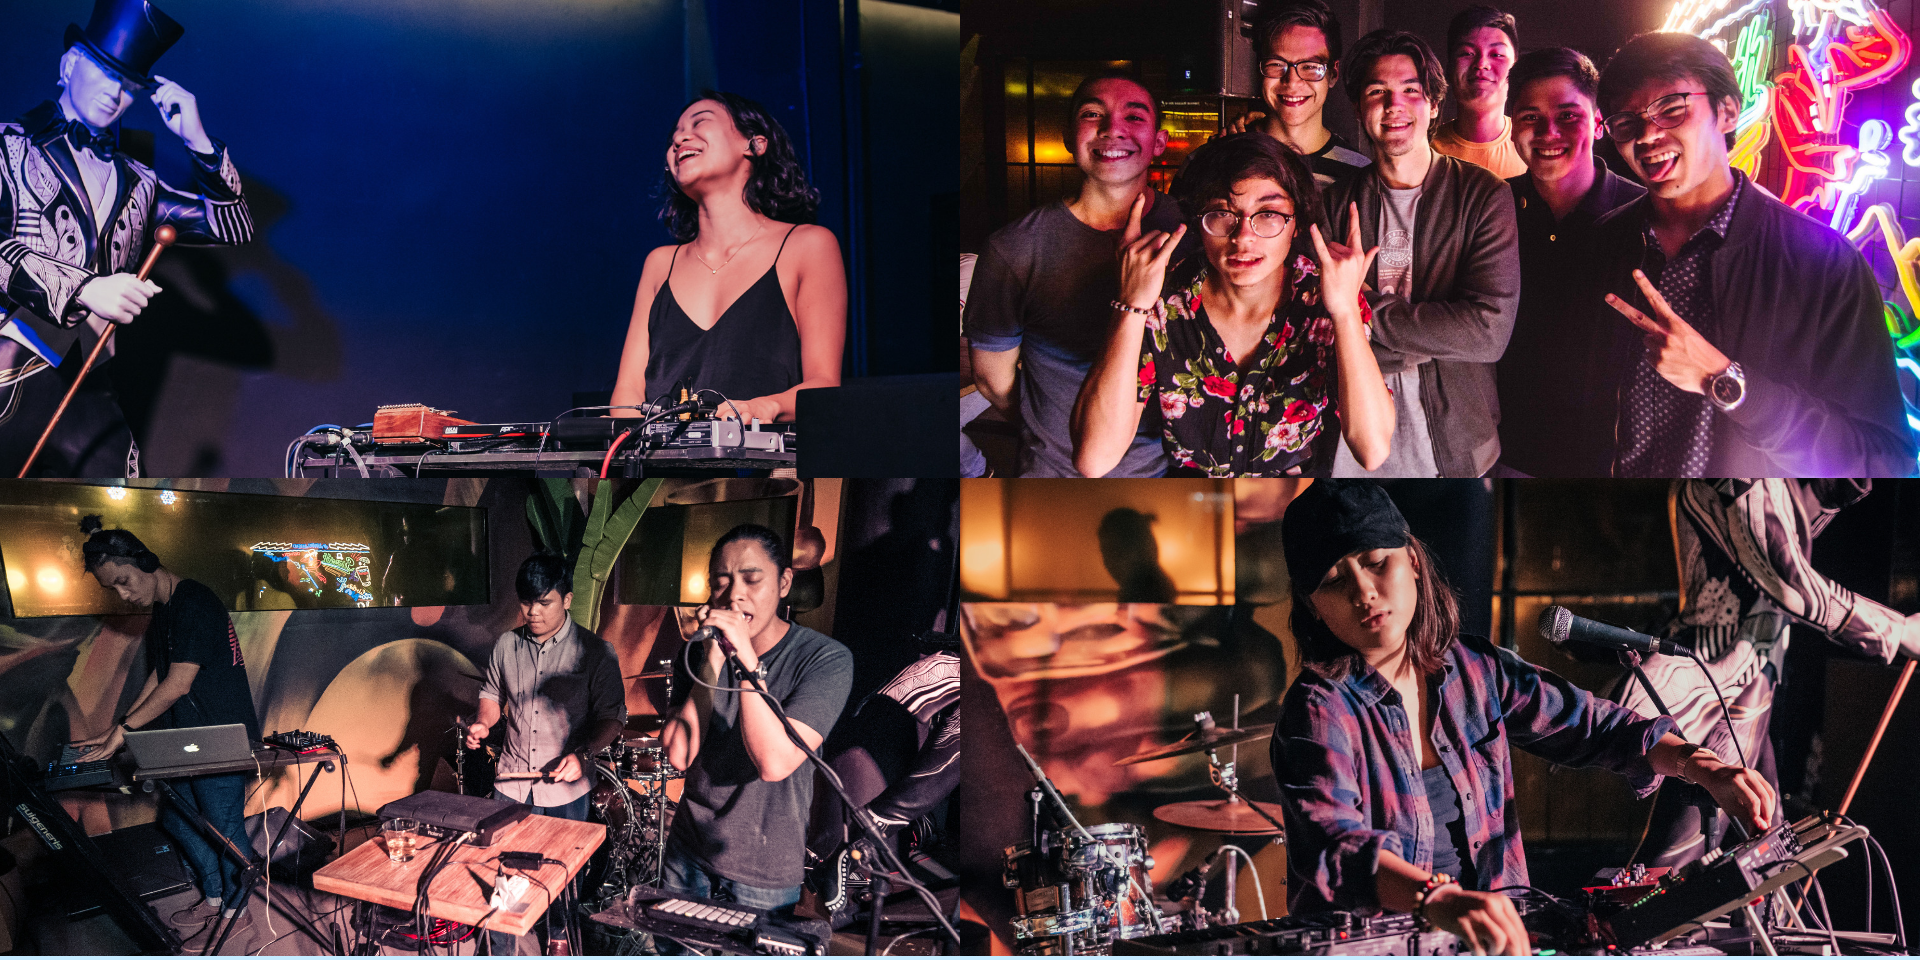 Catch your favorite music artists at this whiskey bar in Poblacion one last time this Thursday